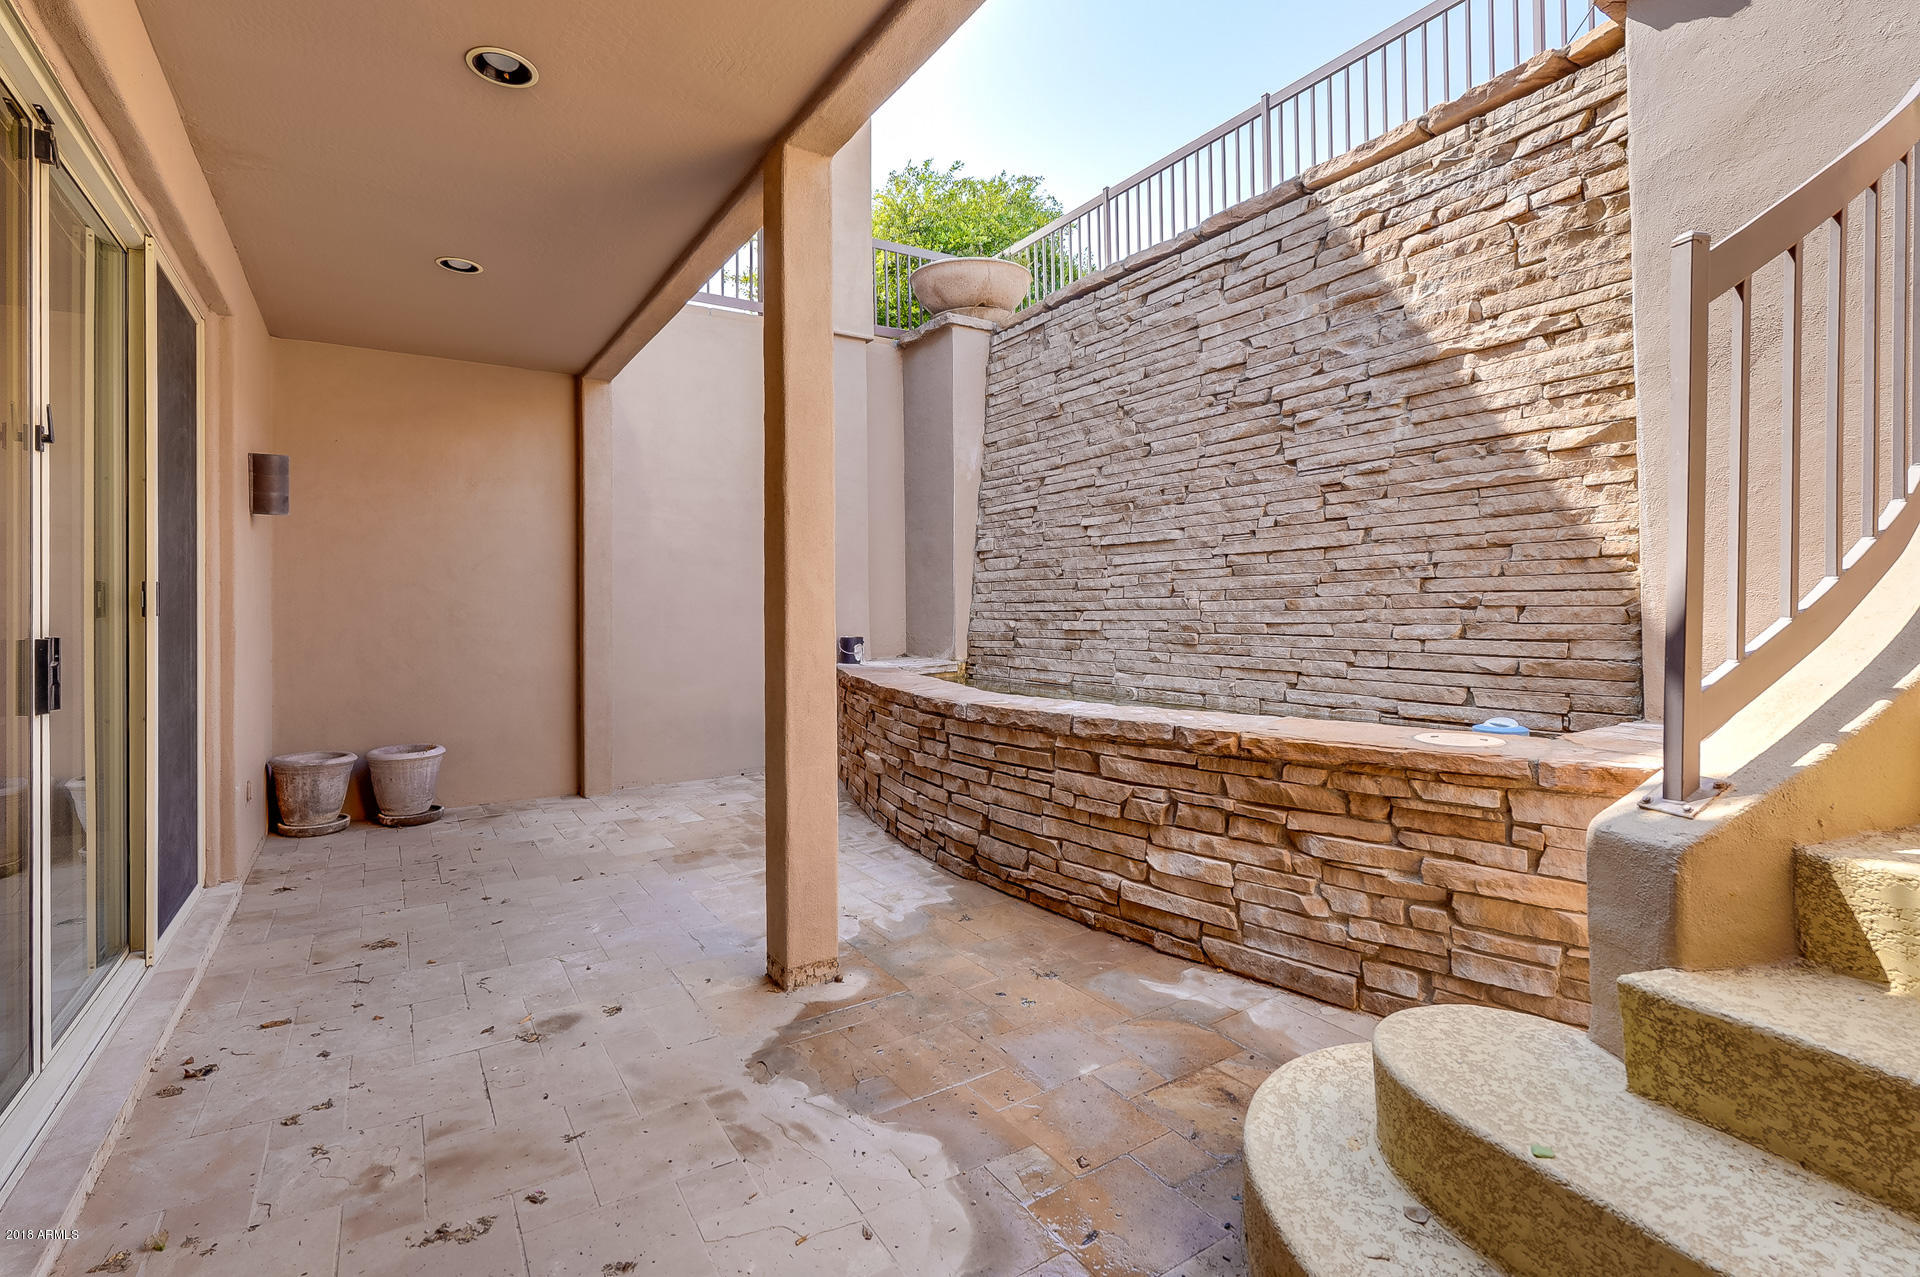 MLS 5926094 7458 E SIERRA VISTA Drive, Scottsdale, AZ 85250 Scottsdale AZ Private Pool